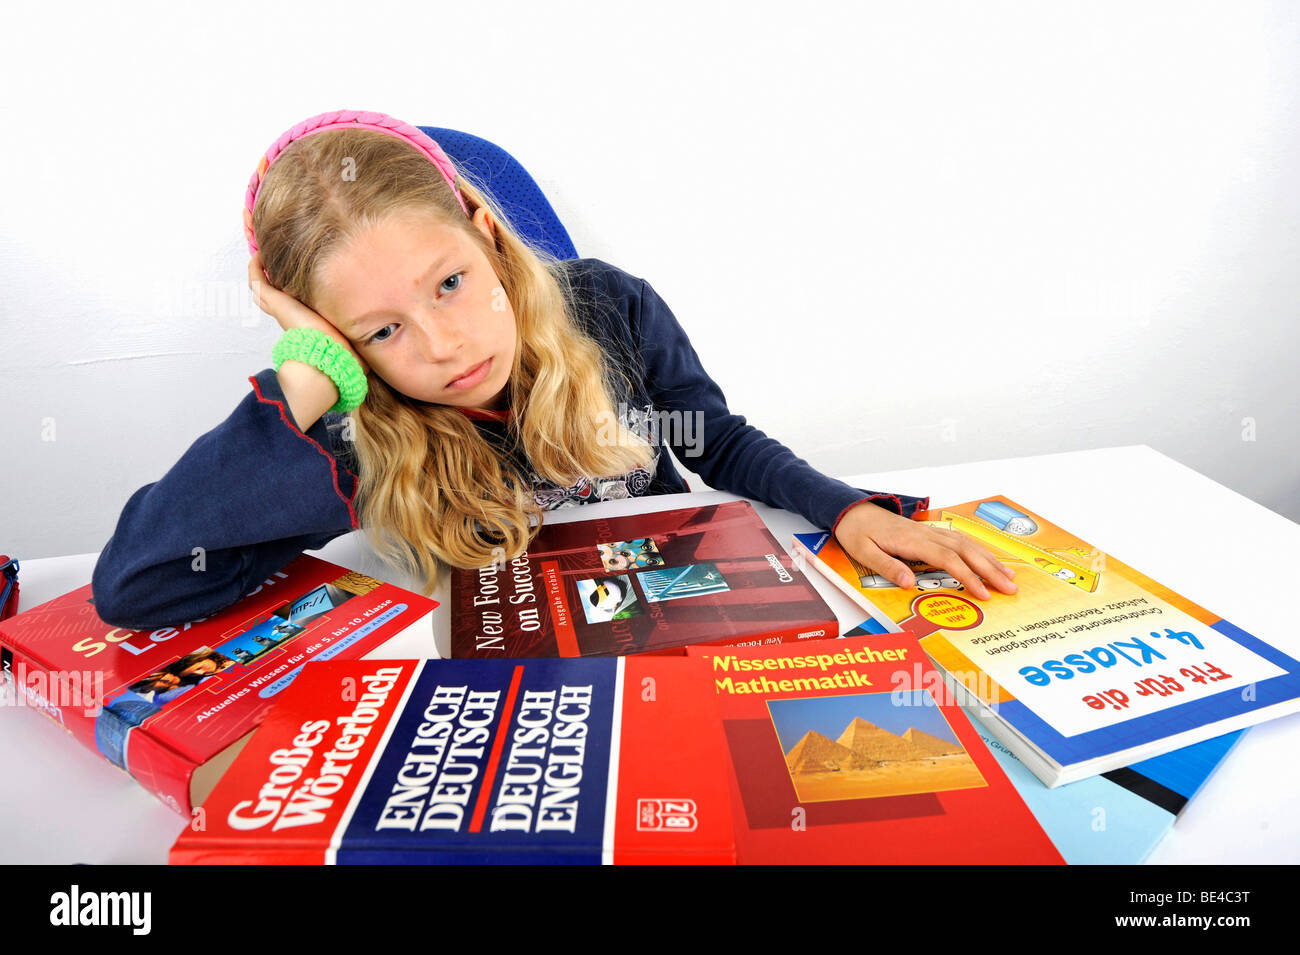 Young schoolgirl is overburdened by her workload, school stress - Stock Image